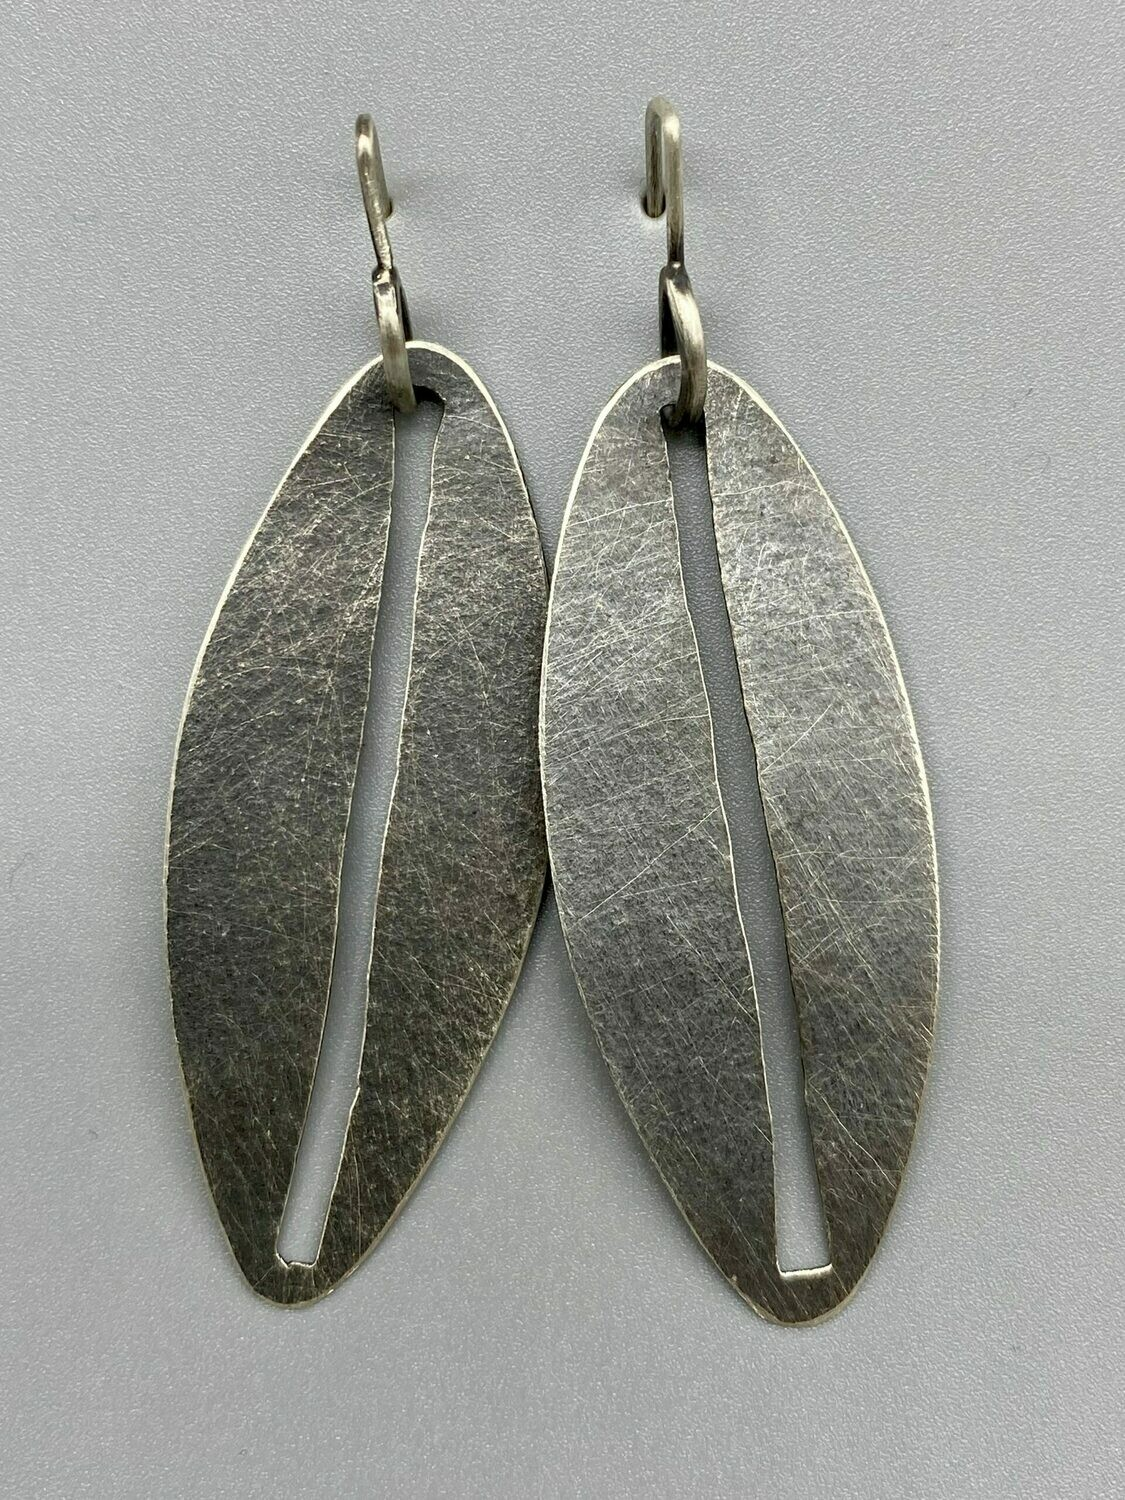 (22)  Sterling Silver Oval Slit Discs Ear Wires - Terri Logan - Richmond IN